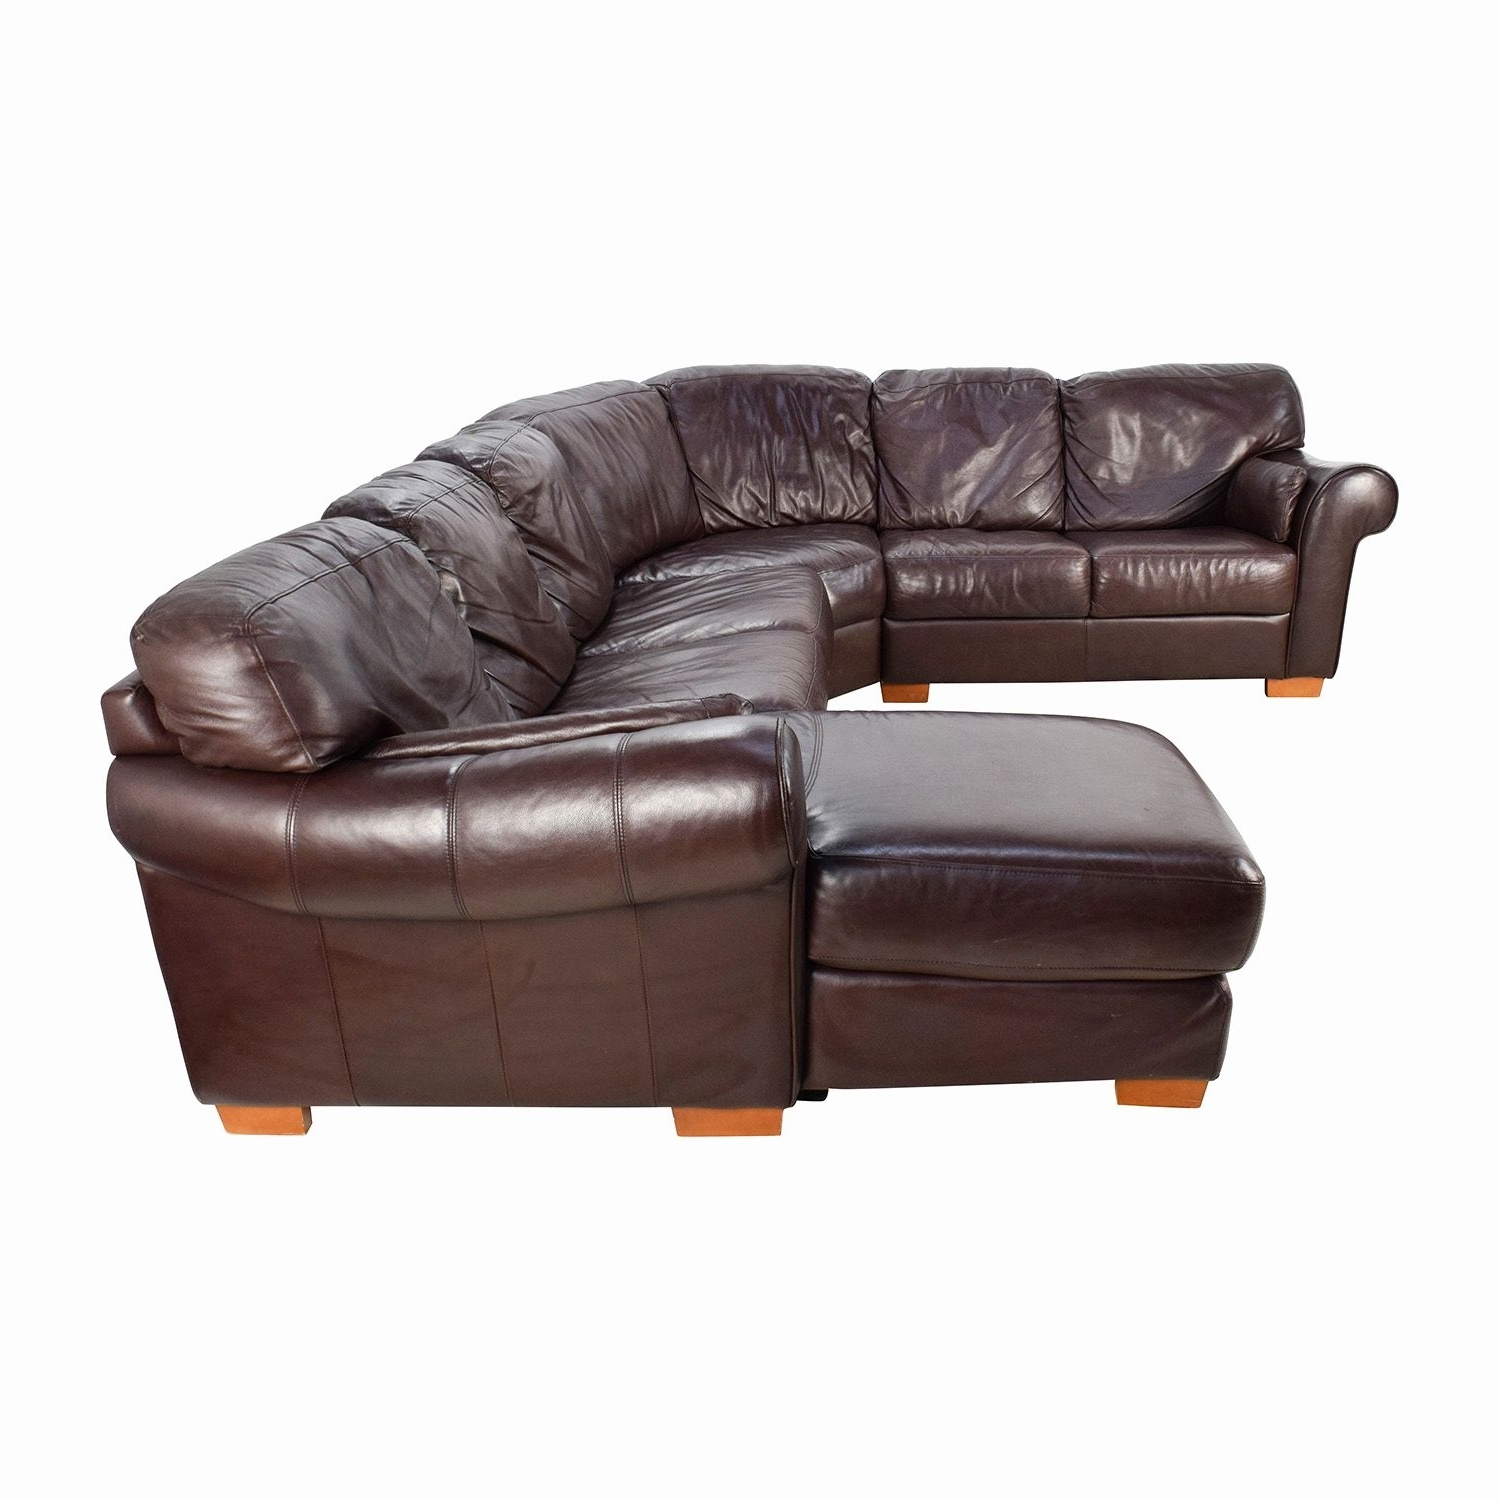 Well Known Raymour And Flanigan Sectional Sofas With Appealing Raymour And Flanigan Sectional Sofas U Couches For Chair (View 14 of 15)